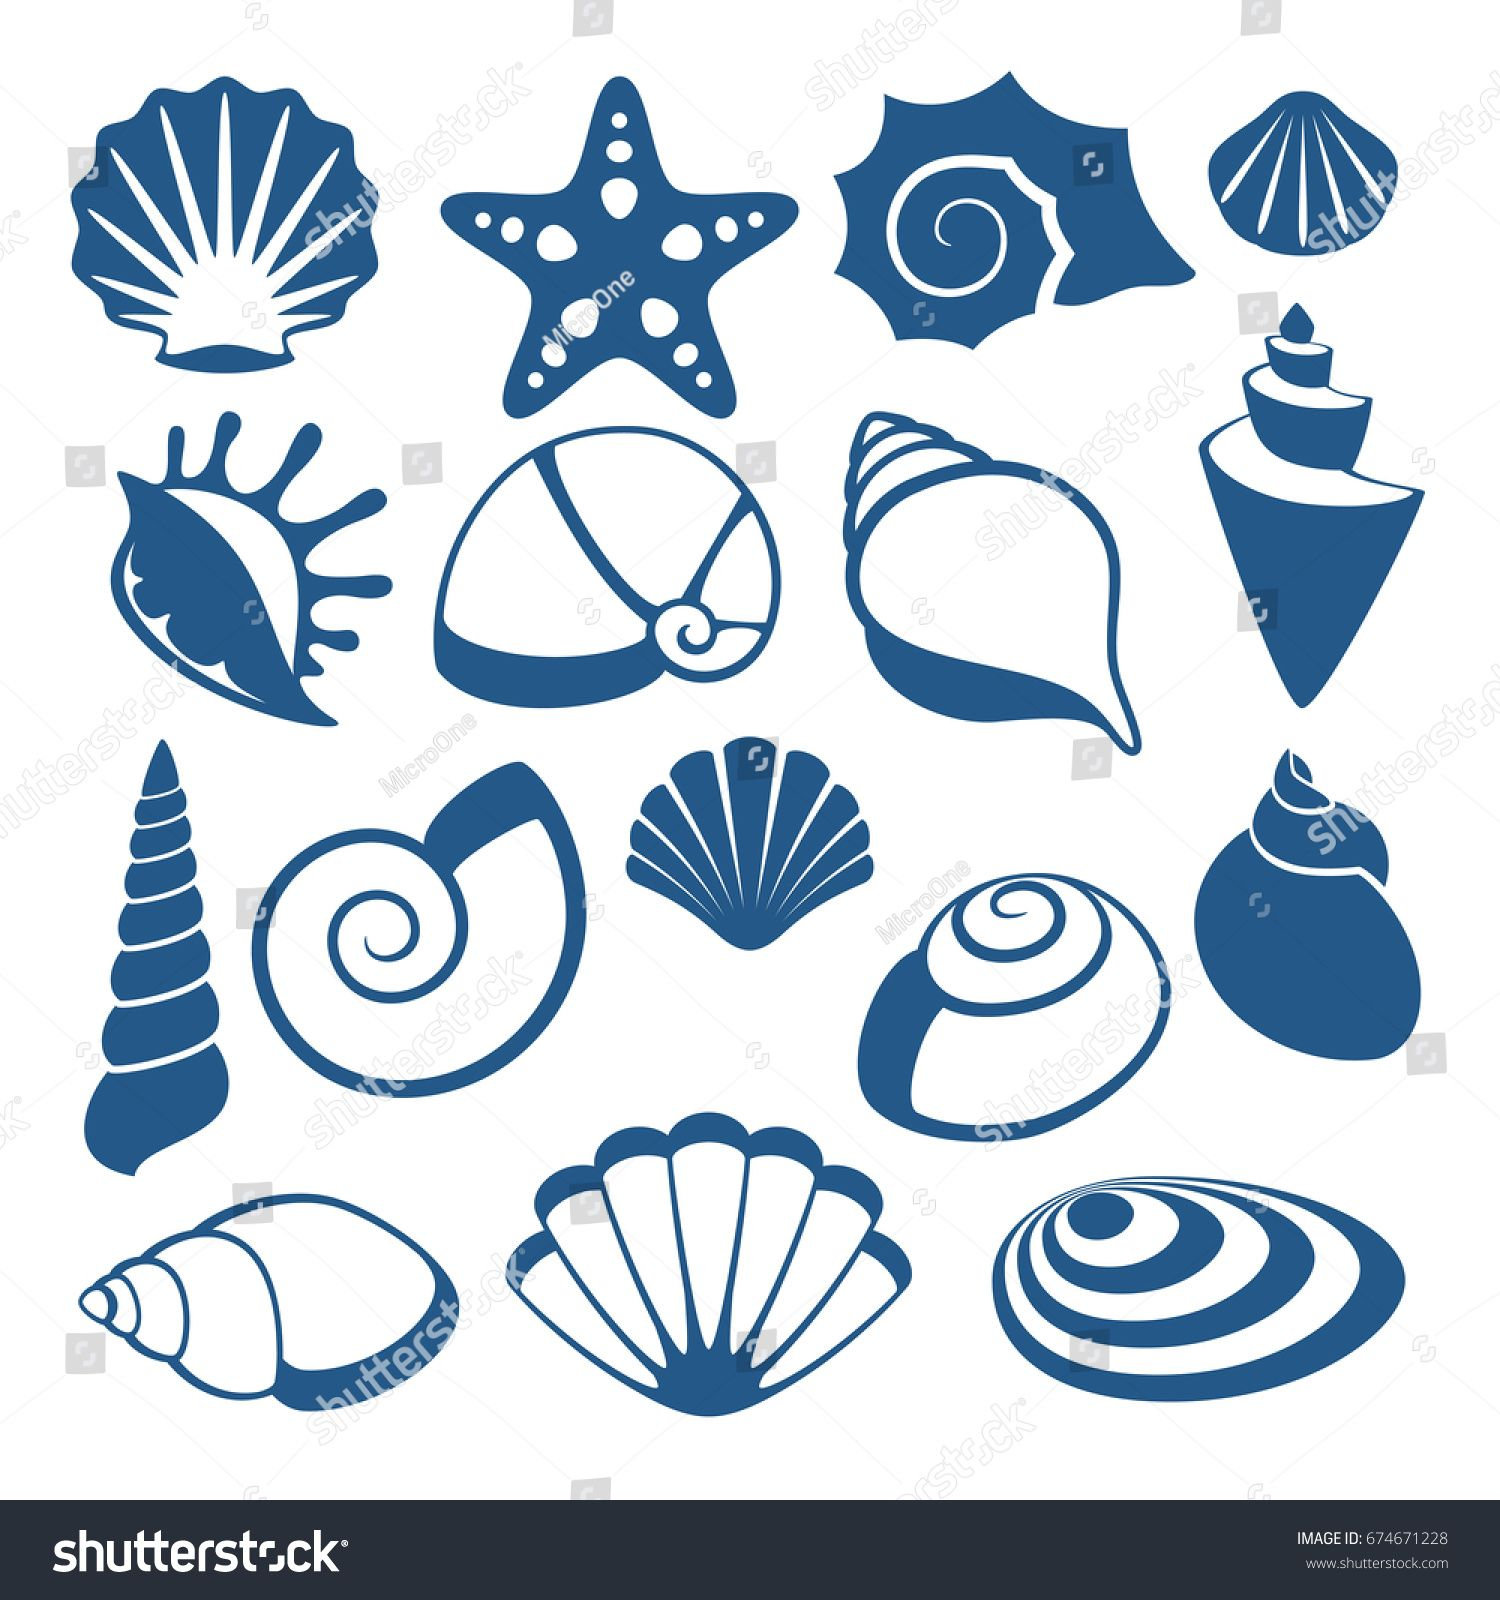 png library download Sea shell silhouette icons. Vector dividers seashell